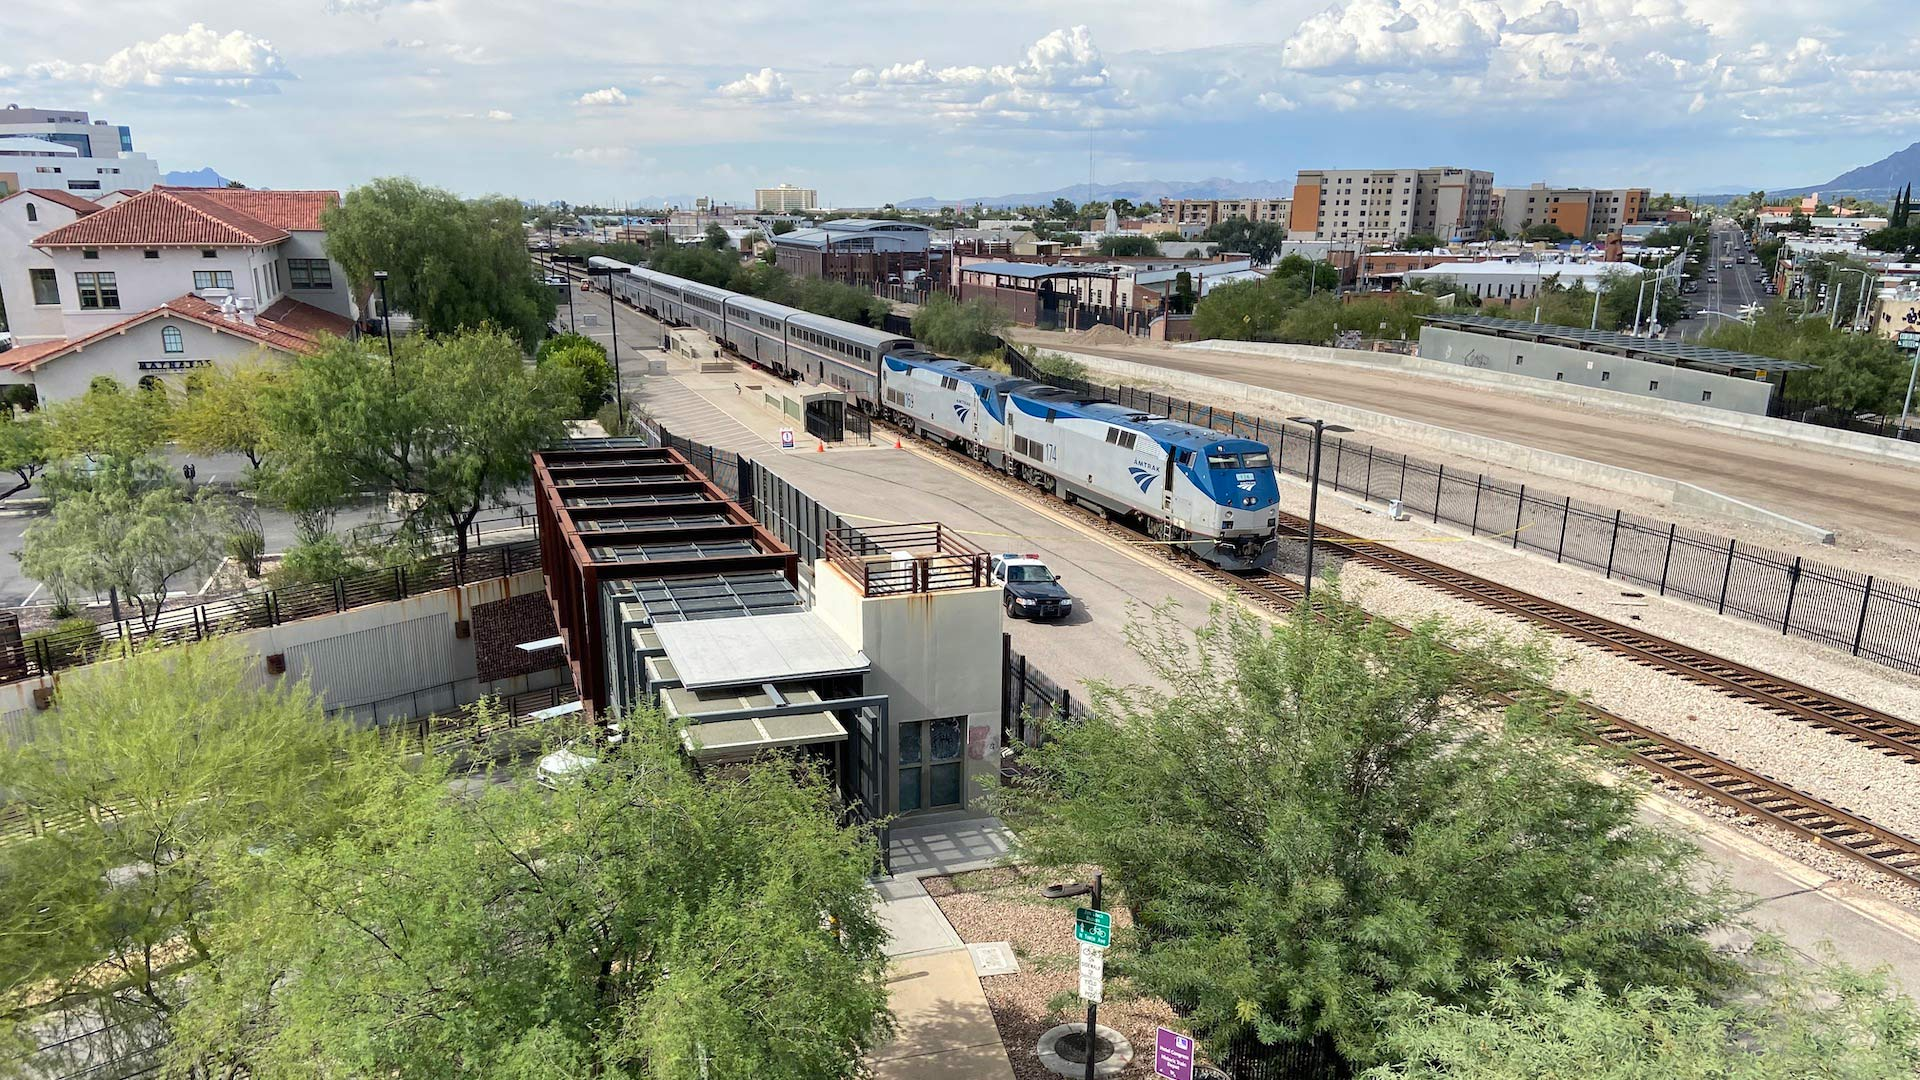 Police say a U.S. Drug Enforcement Administration special agent and another person were killed during a shootout on an Amtrak train that stopped in downtown Tucson on Monday morning.